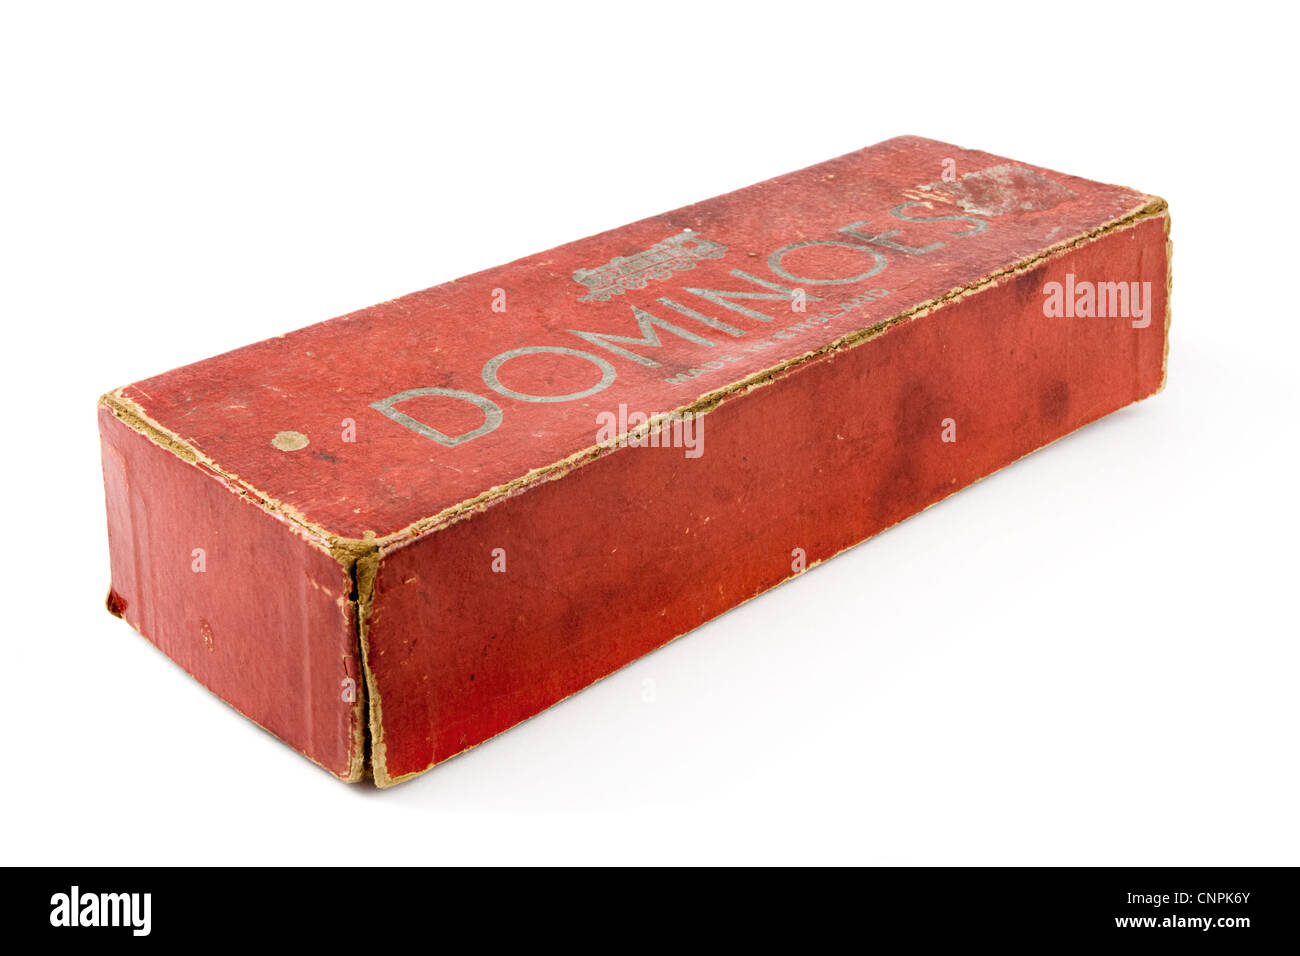 Old carboard dominos box over white - Stock Image